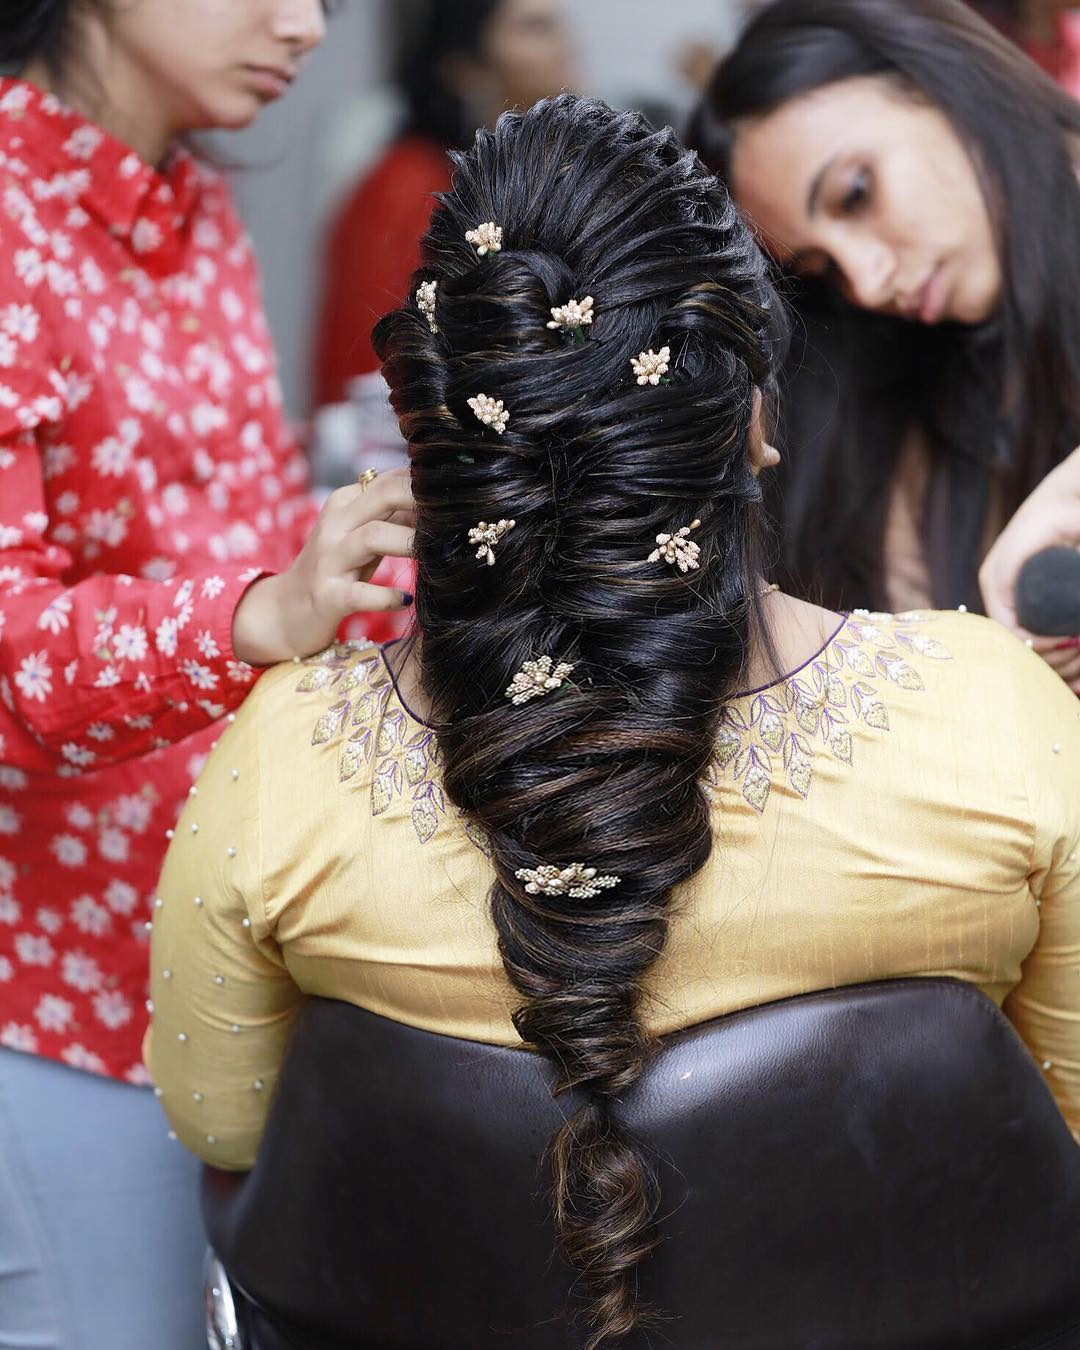 Accessorize: Floral hairstyles for Haldi and Mehendi Ceremonies!a